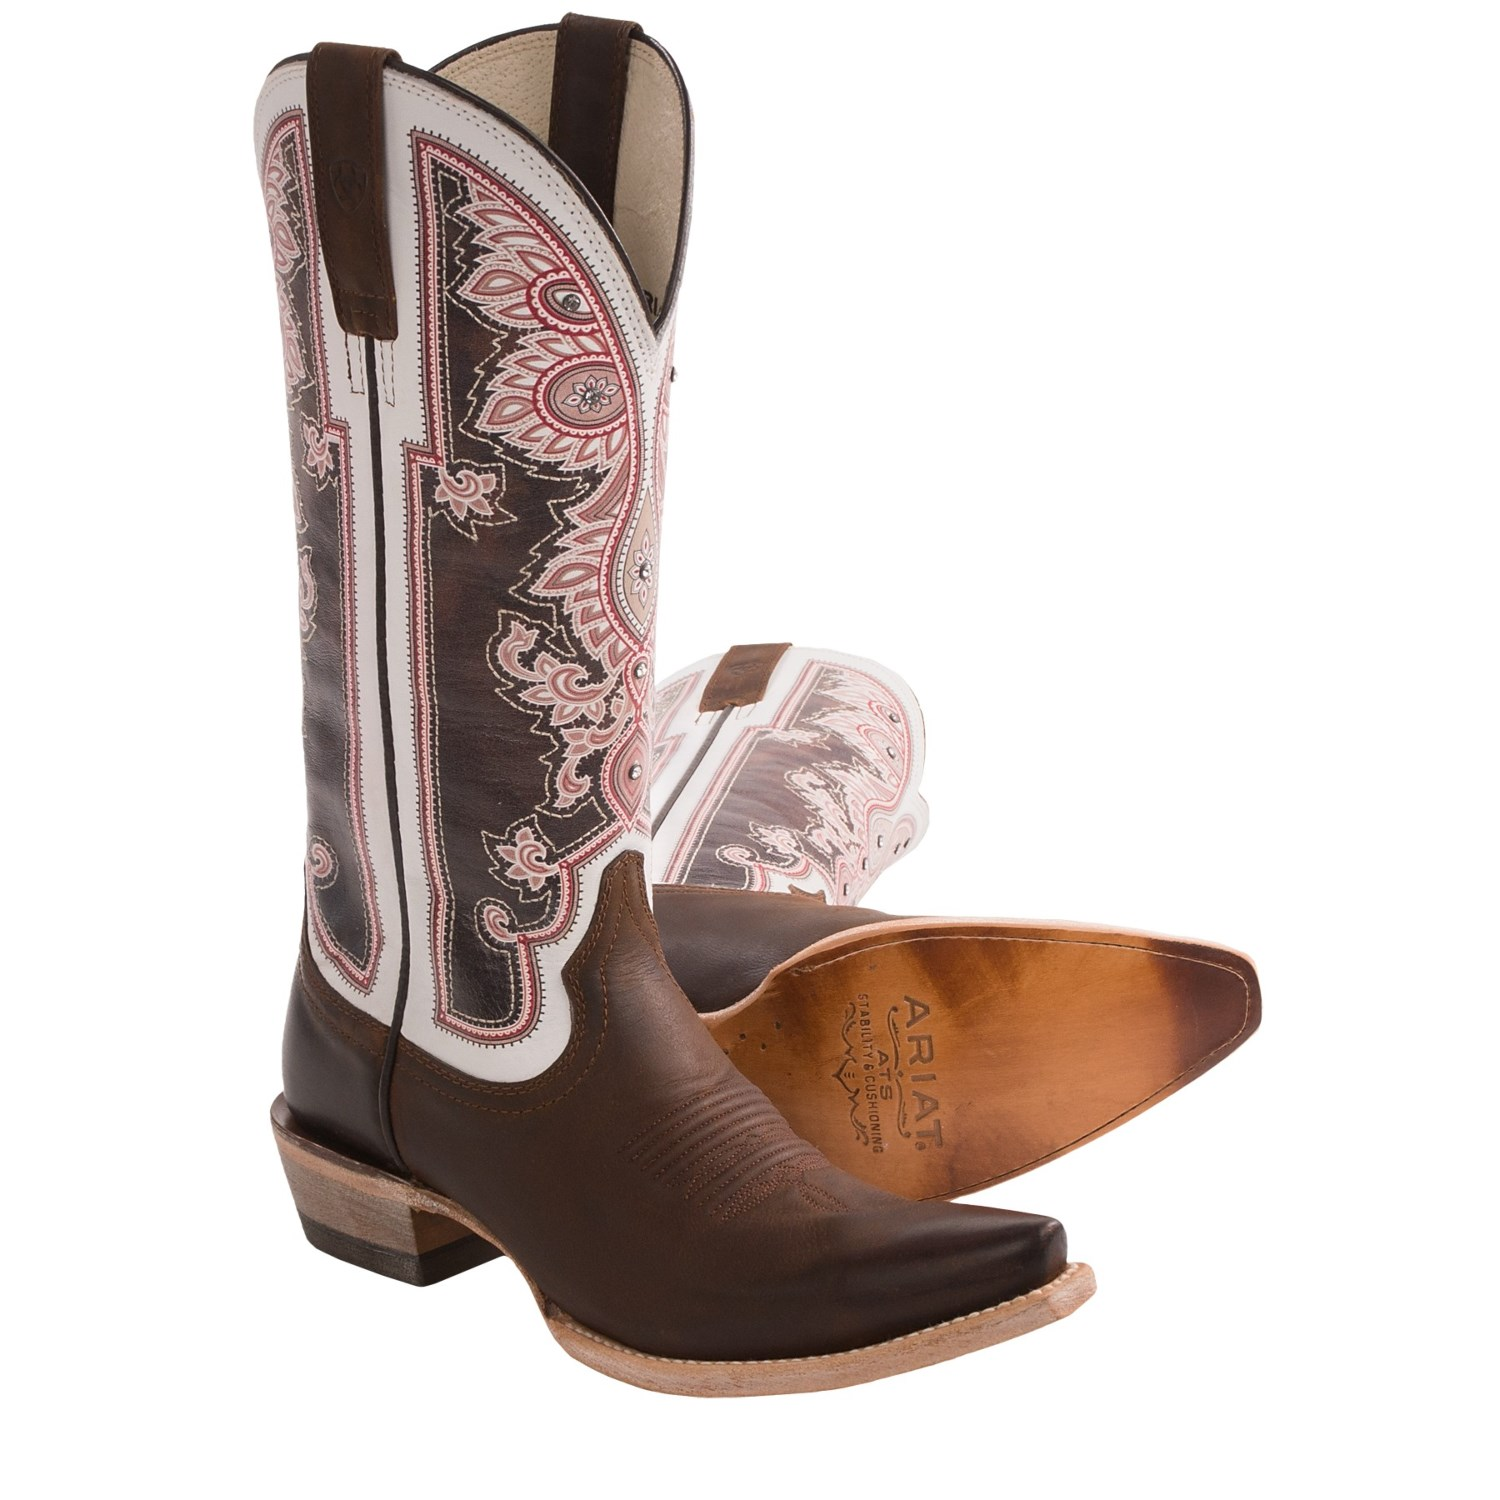 Ariat Cowboy Boots For Women tiovJdNP